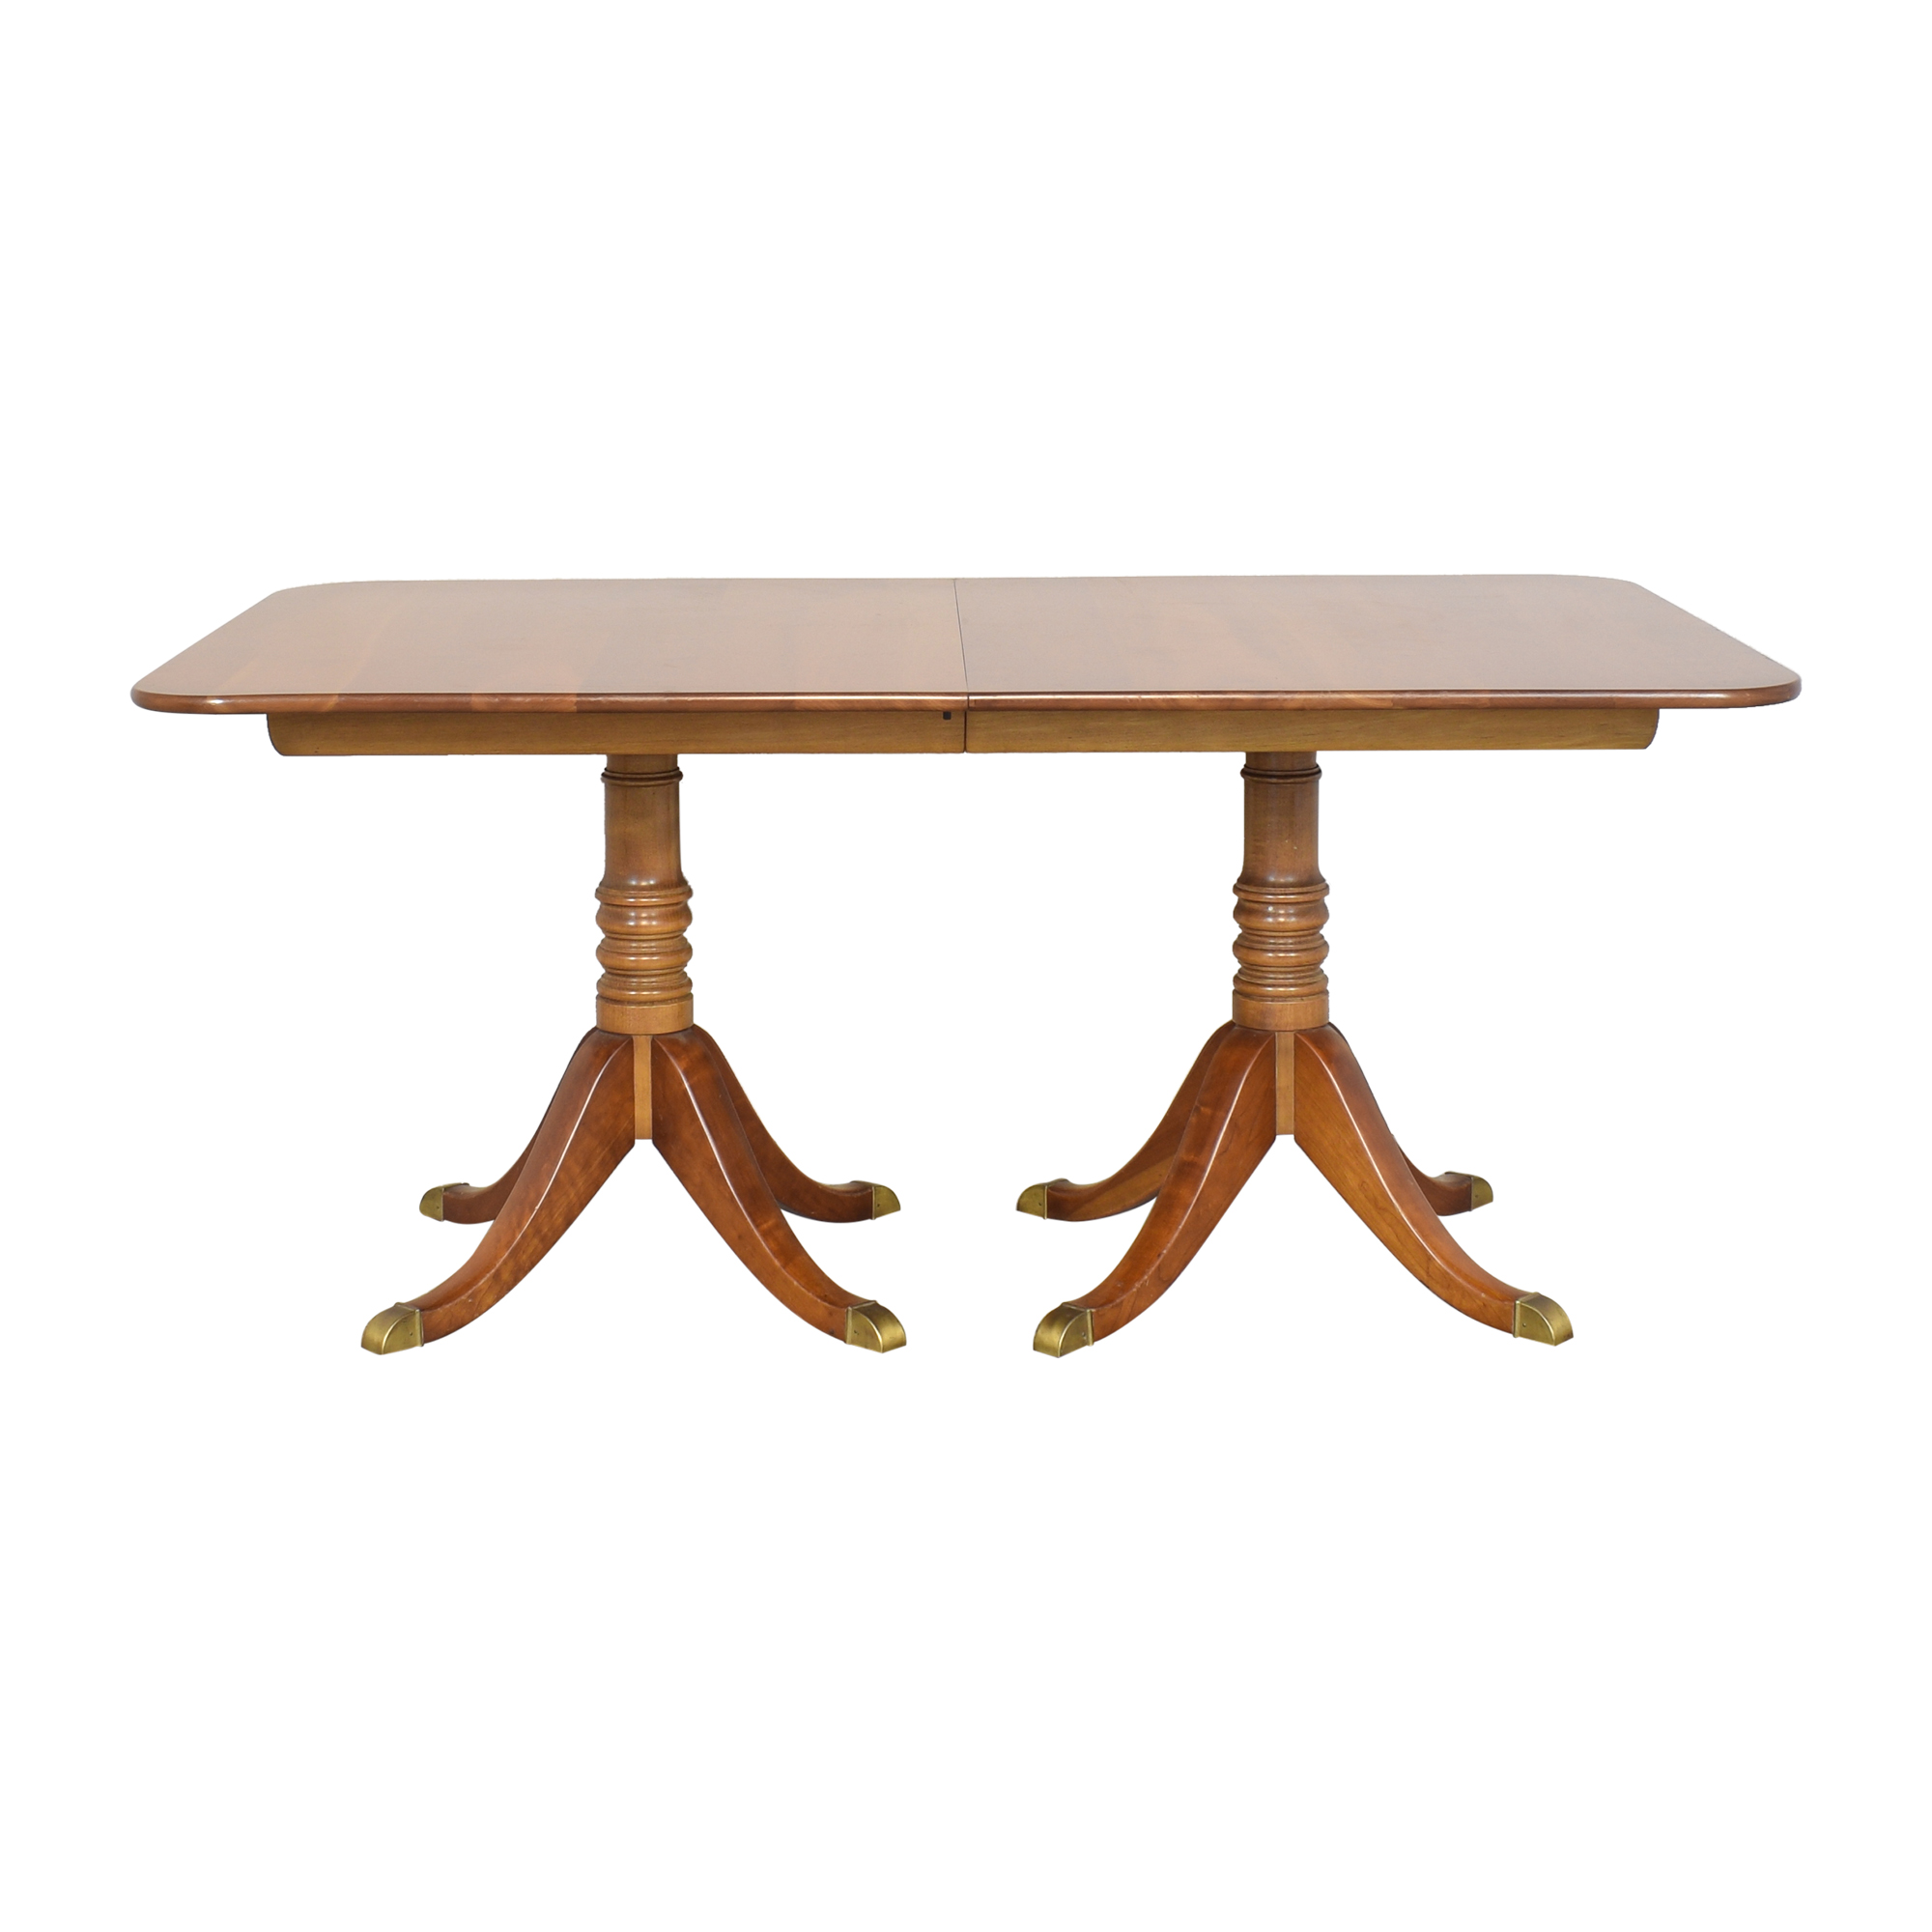 Stickley Furniture Stickley Furniture Double Pedestal Extendable Dining Table on sale